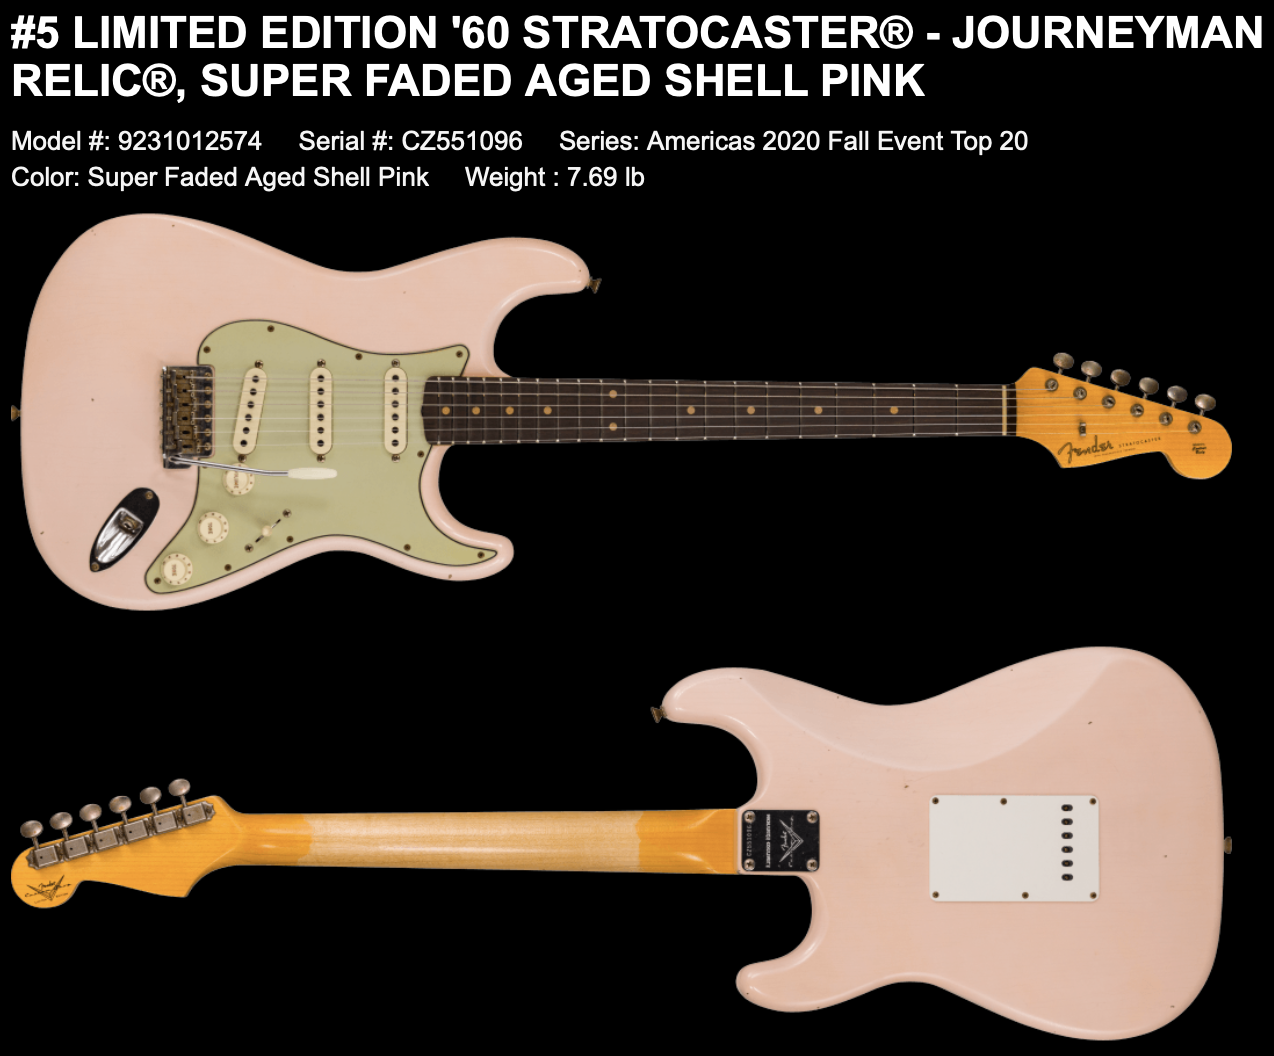 (PRE-ORDER) Fender Custom Shop Limited 1960's Journeyman Relic Stratocaster in Shell Pink